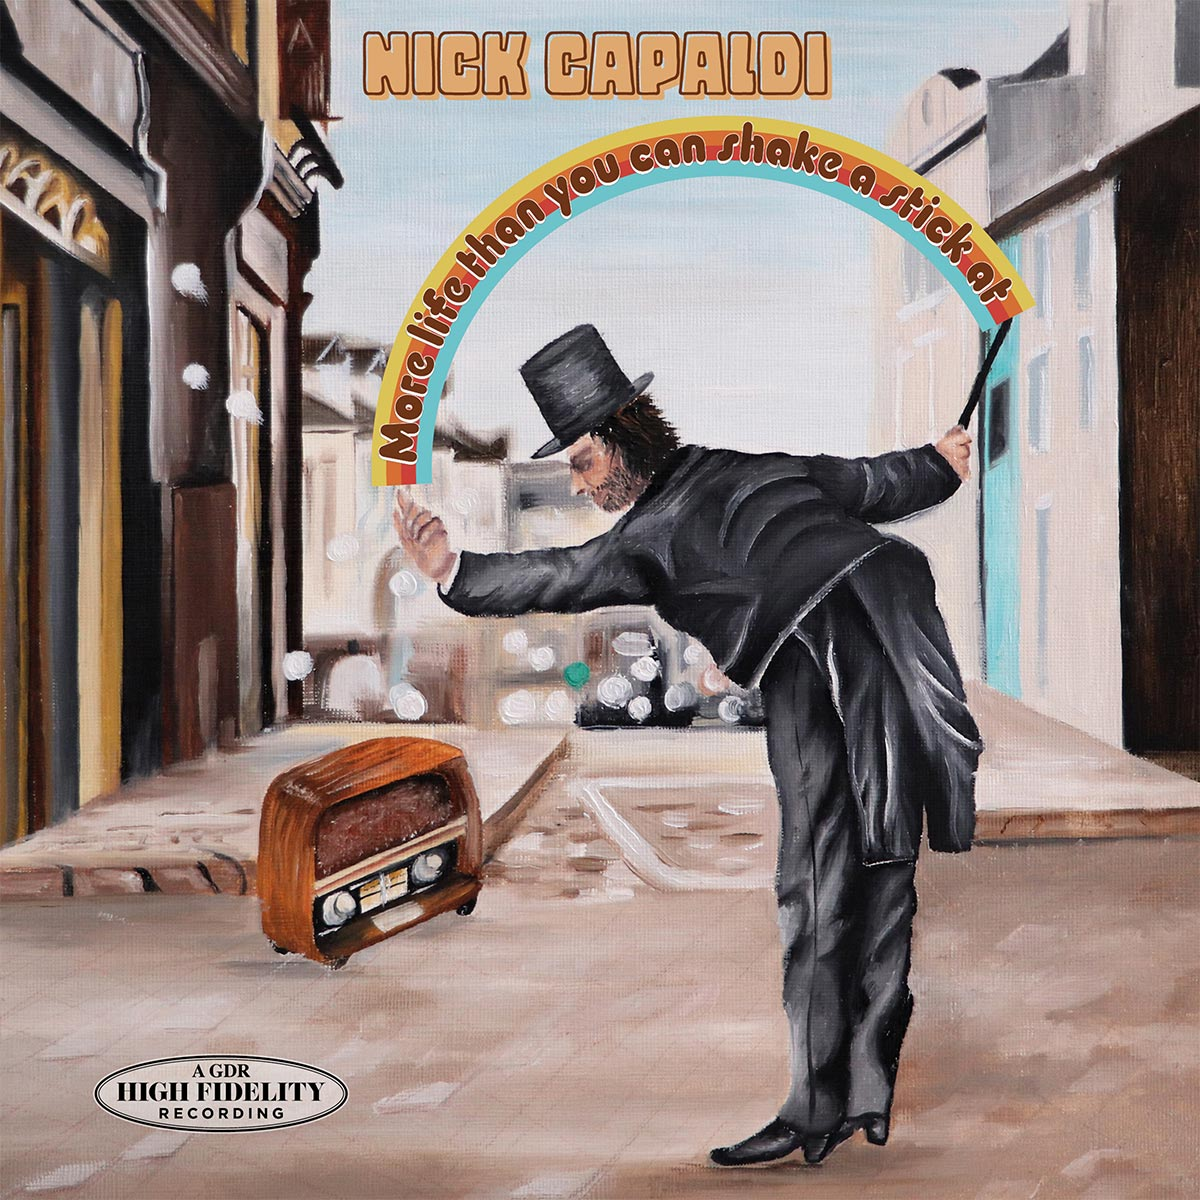 Nick Capaldi Musician - More life than you can shake a stick at – EP